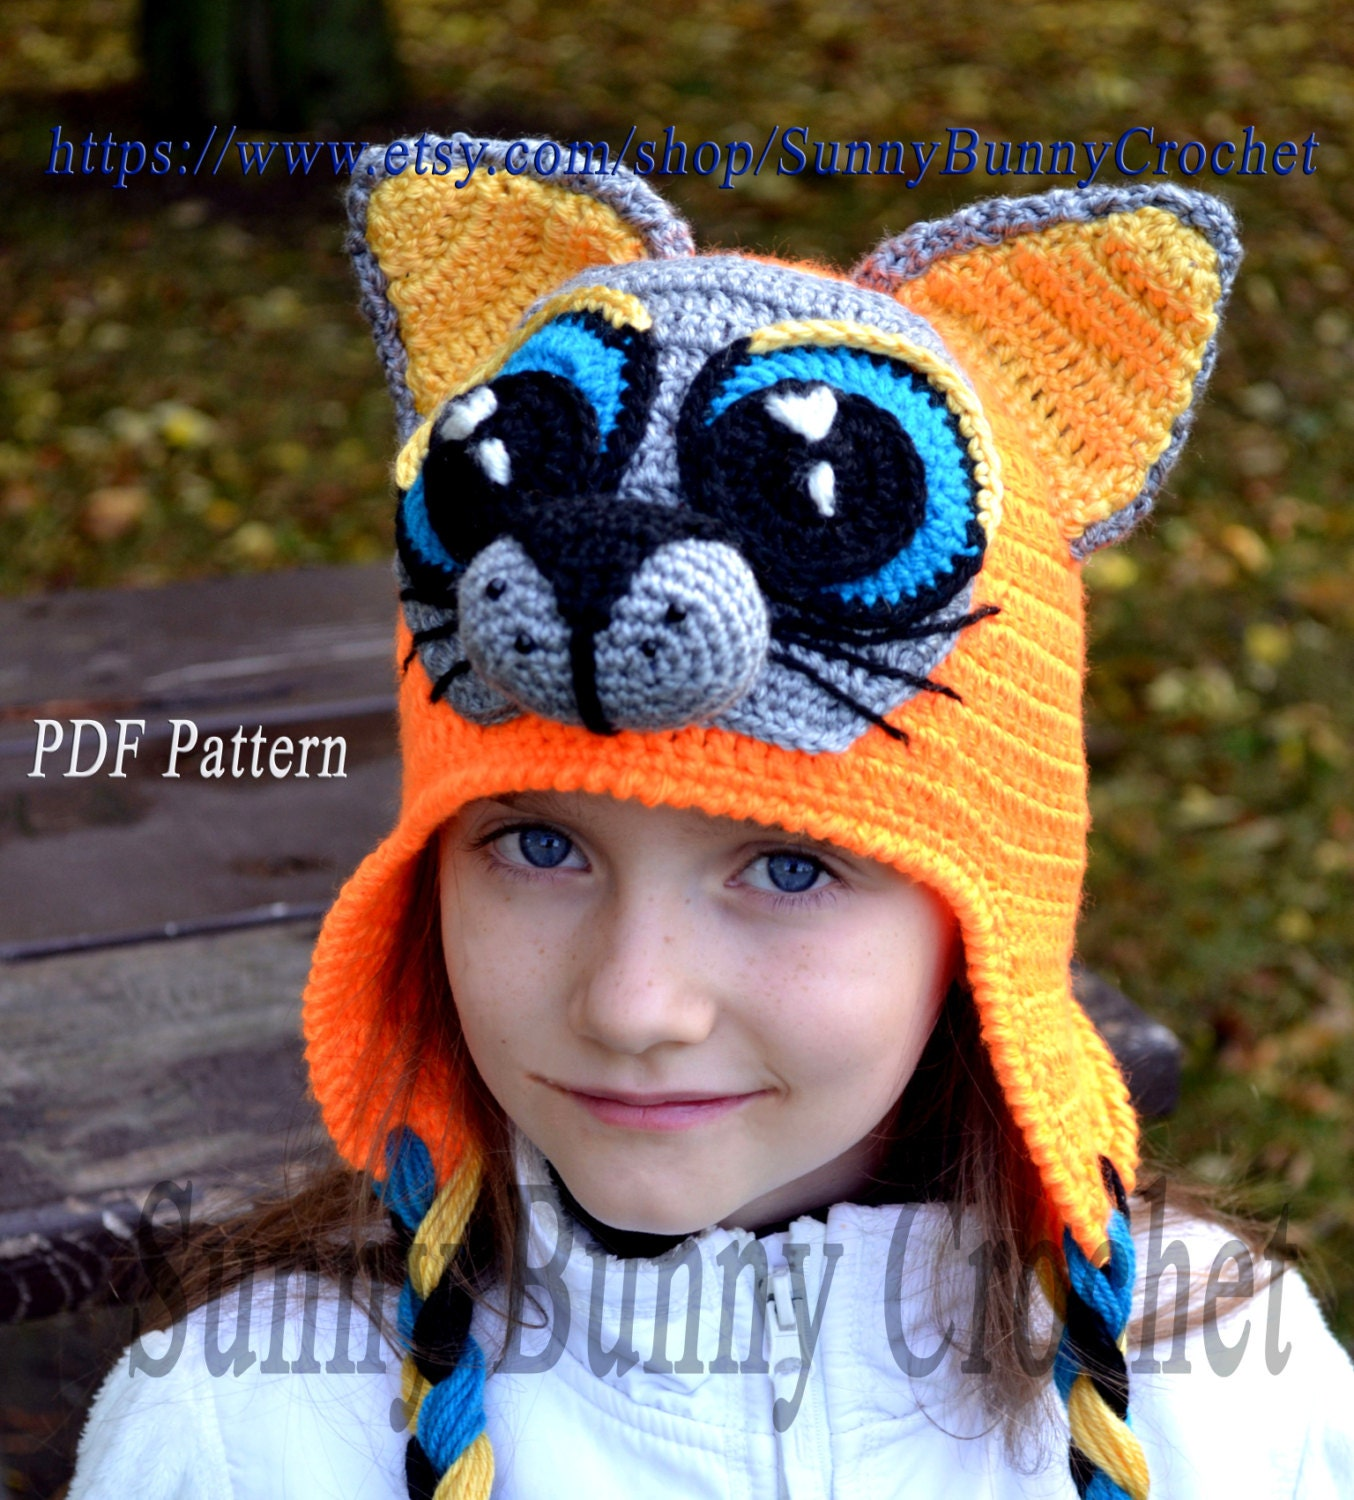 deb49534c66 ... free shipping childrens knit hats animals patterns explained free  shipping handmade crochet aviator hat pattern knitted